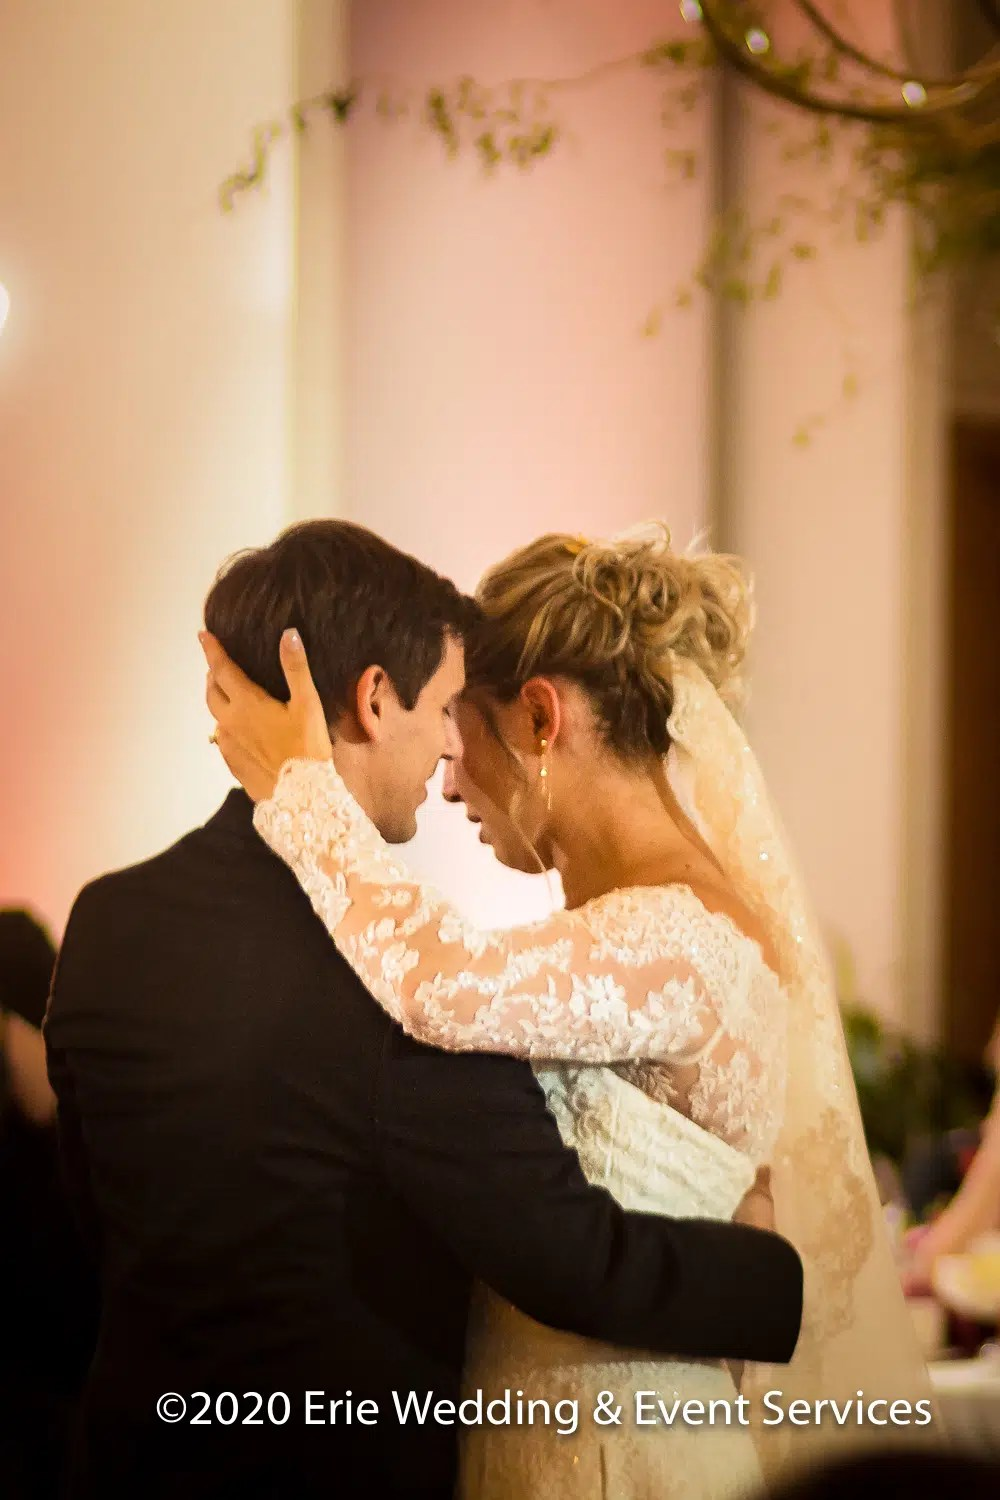 Erie Wedding and Event Services